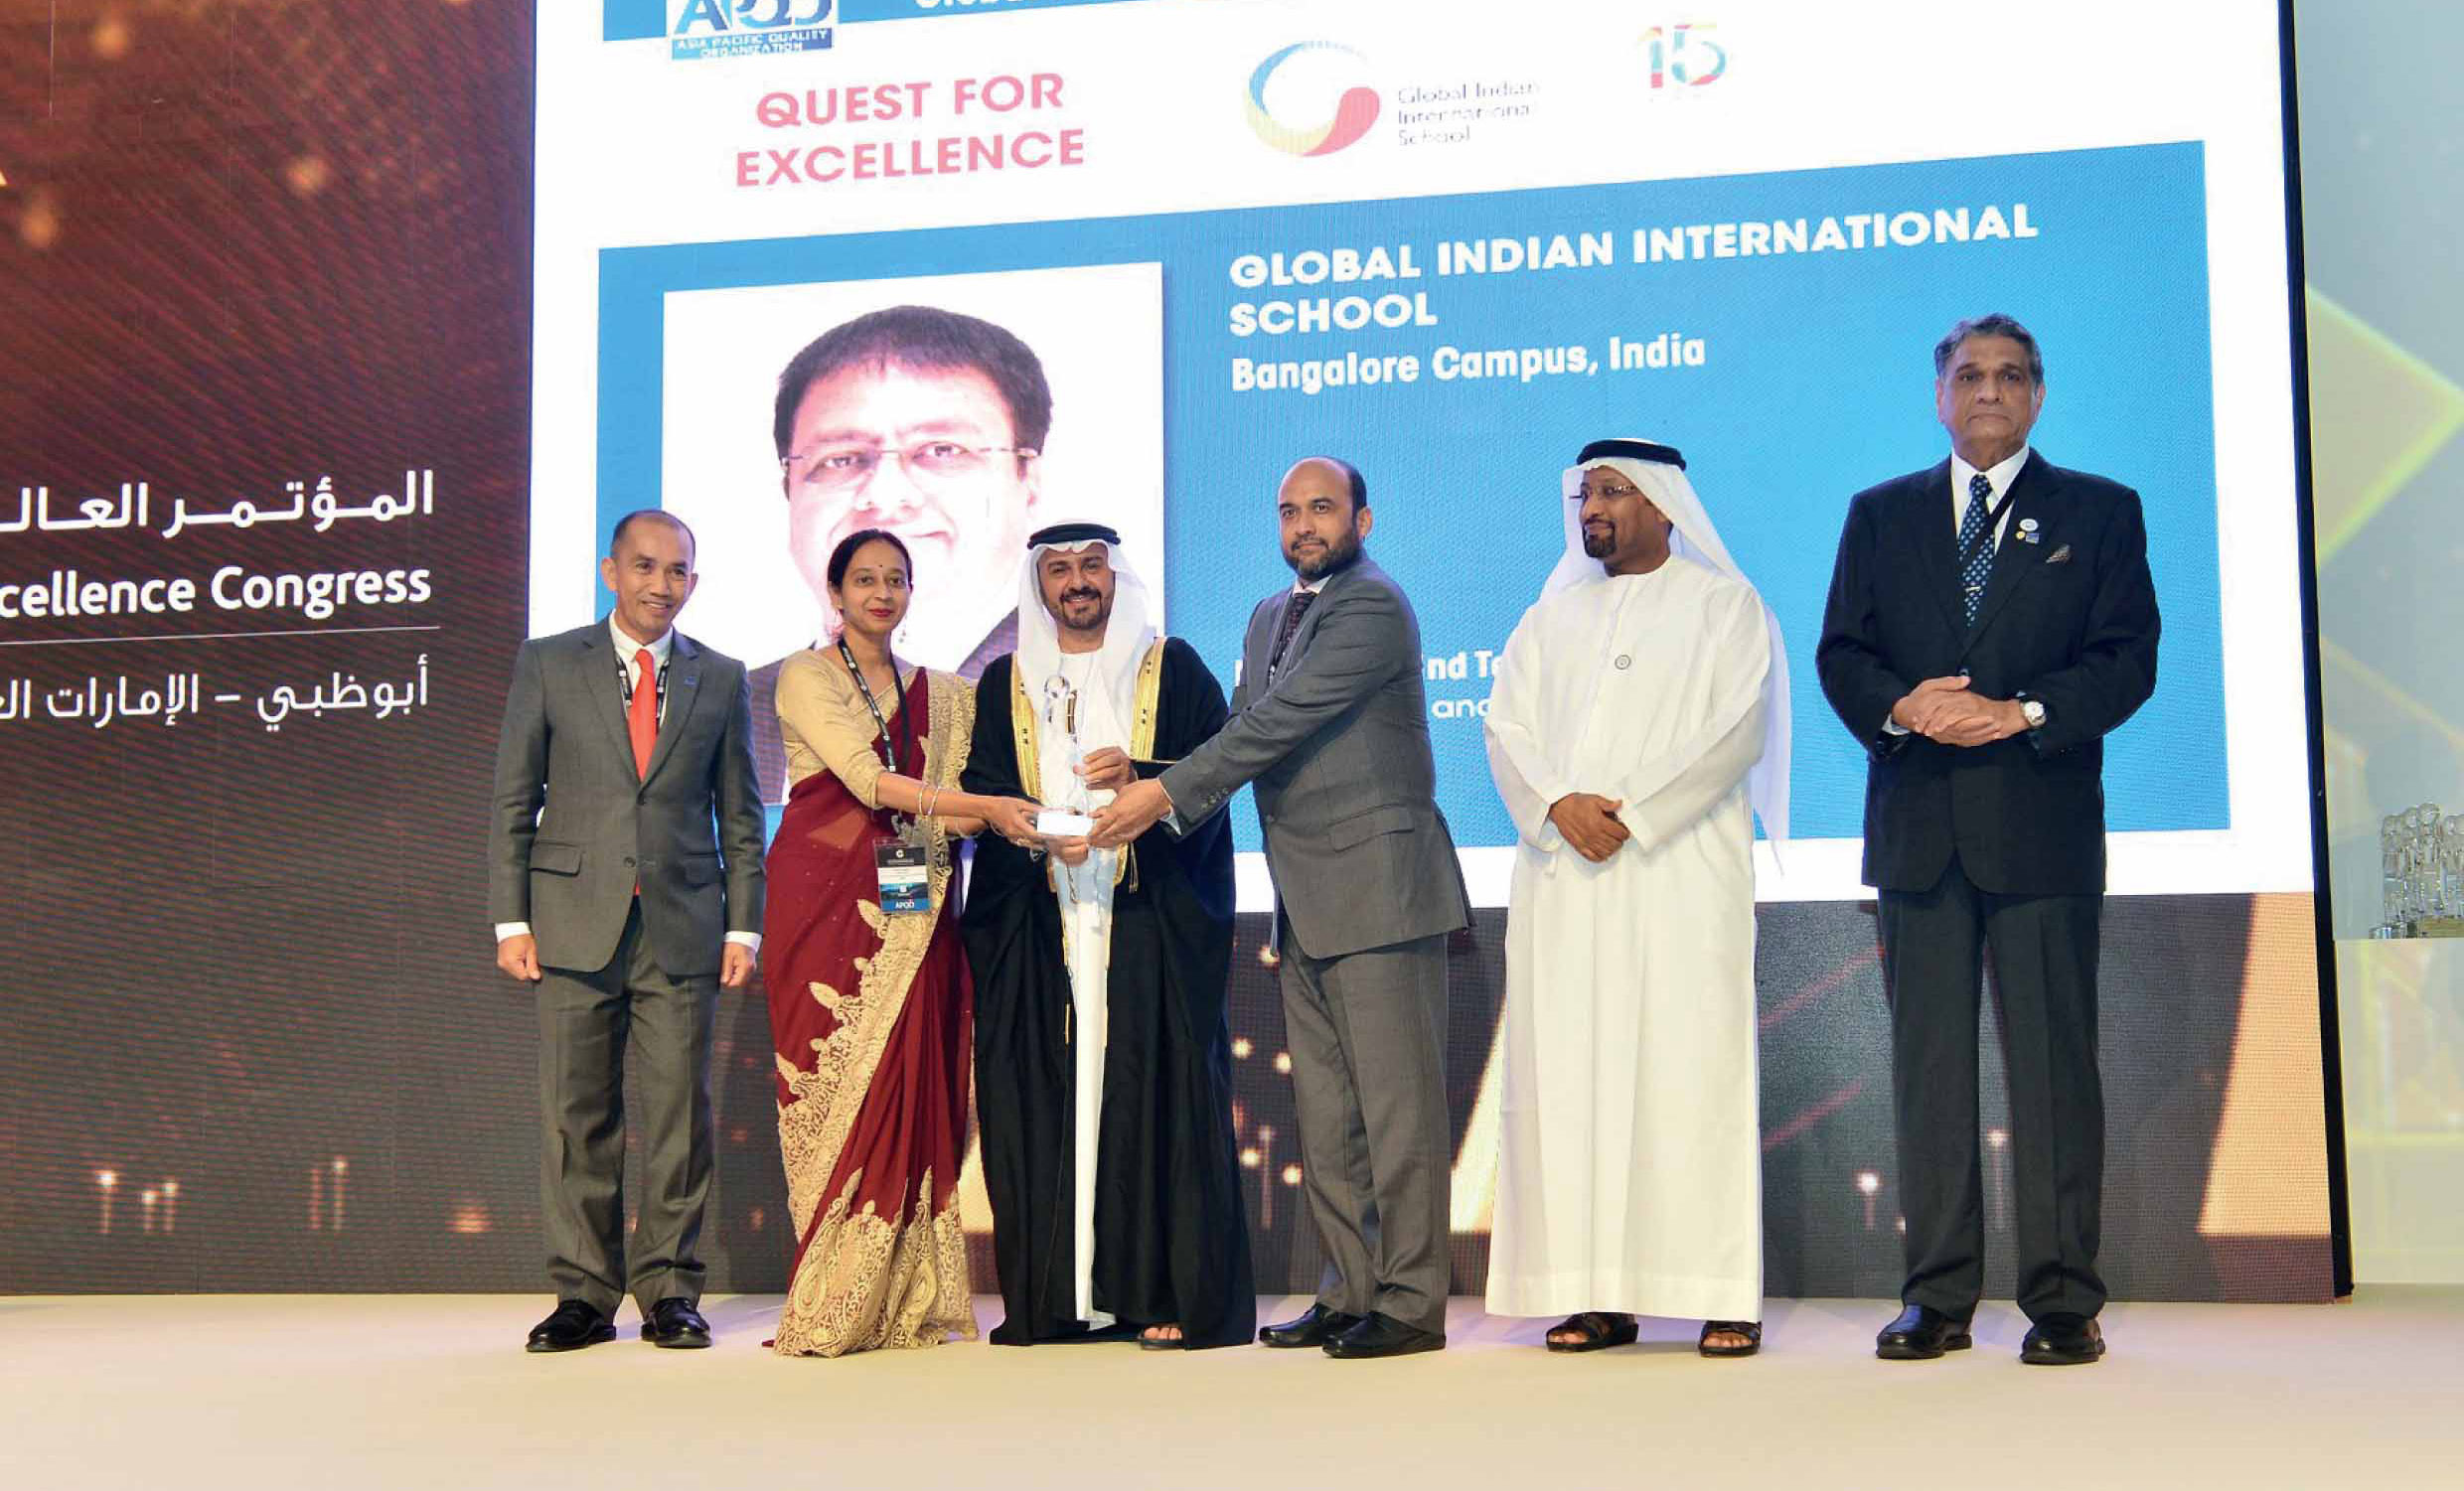 GIIS Whitefield received 2 APQO Awards in Abu Dhabi for Excellence